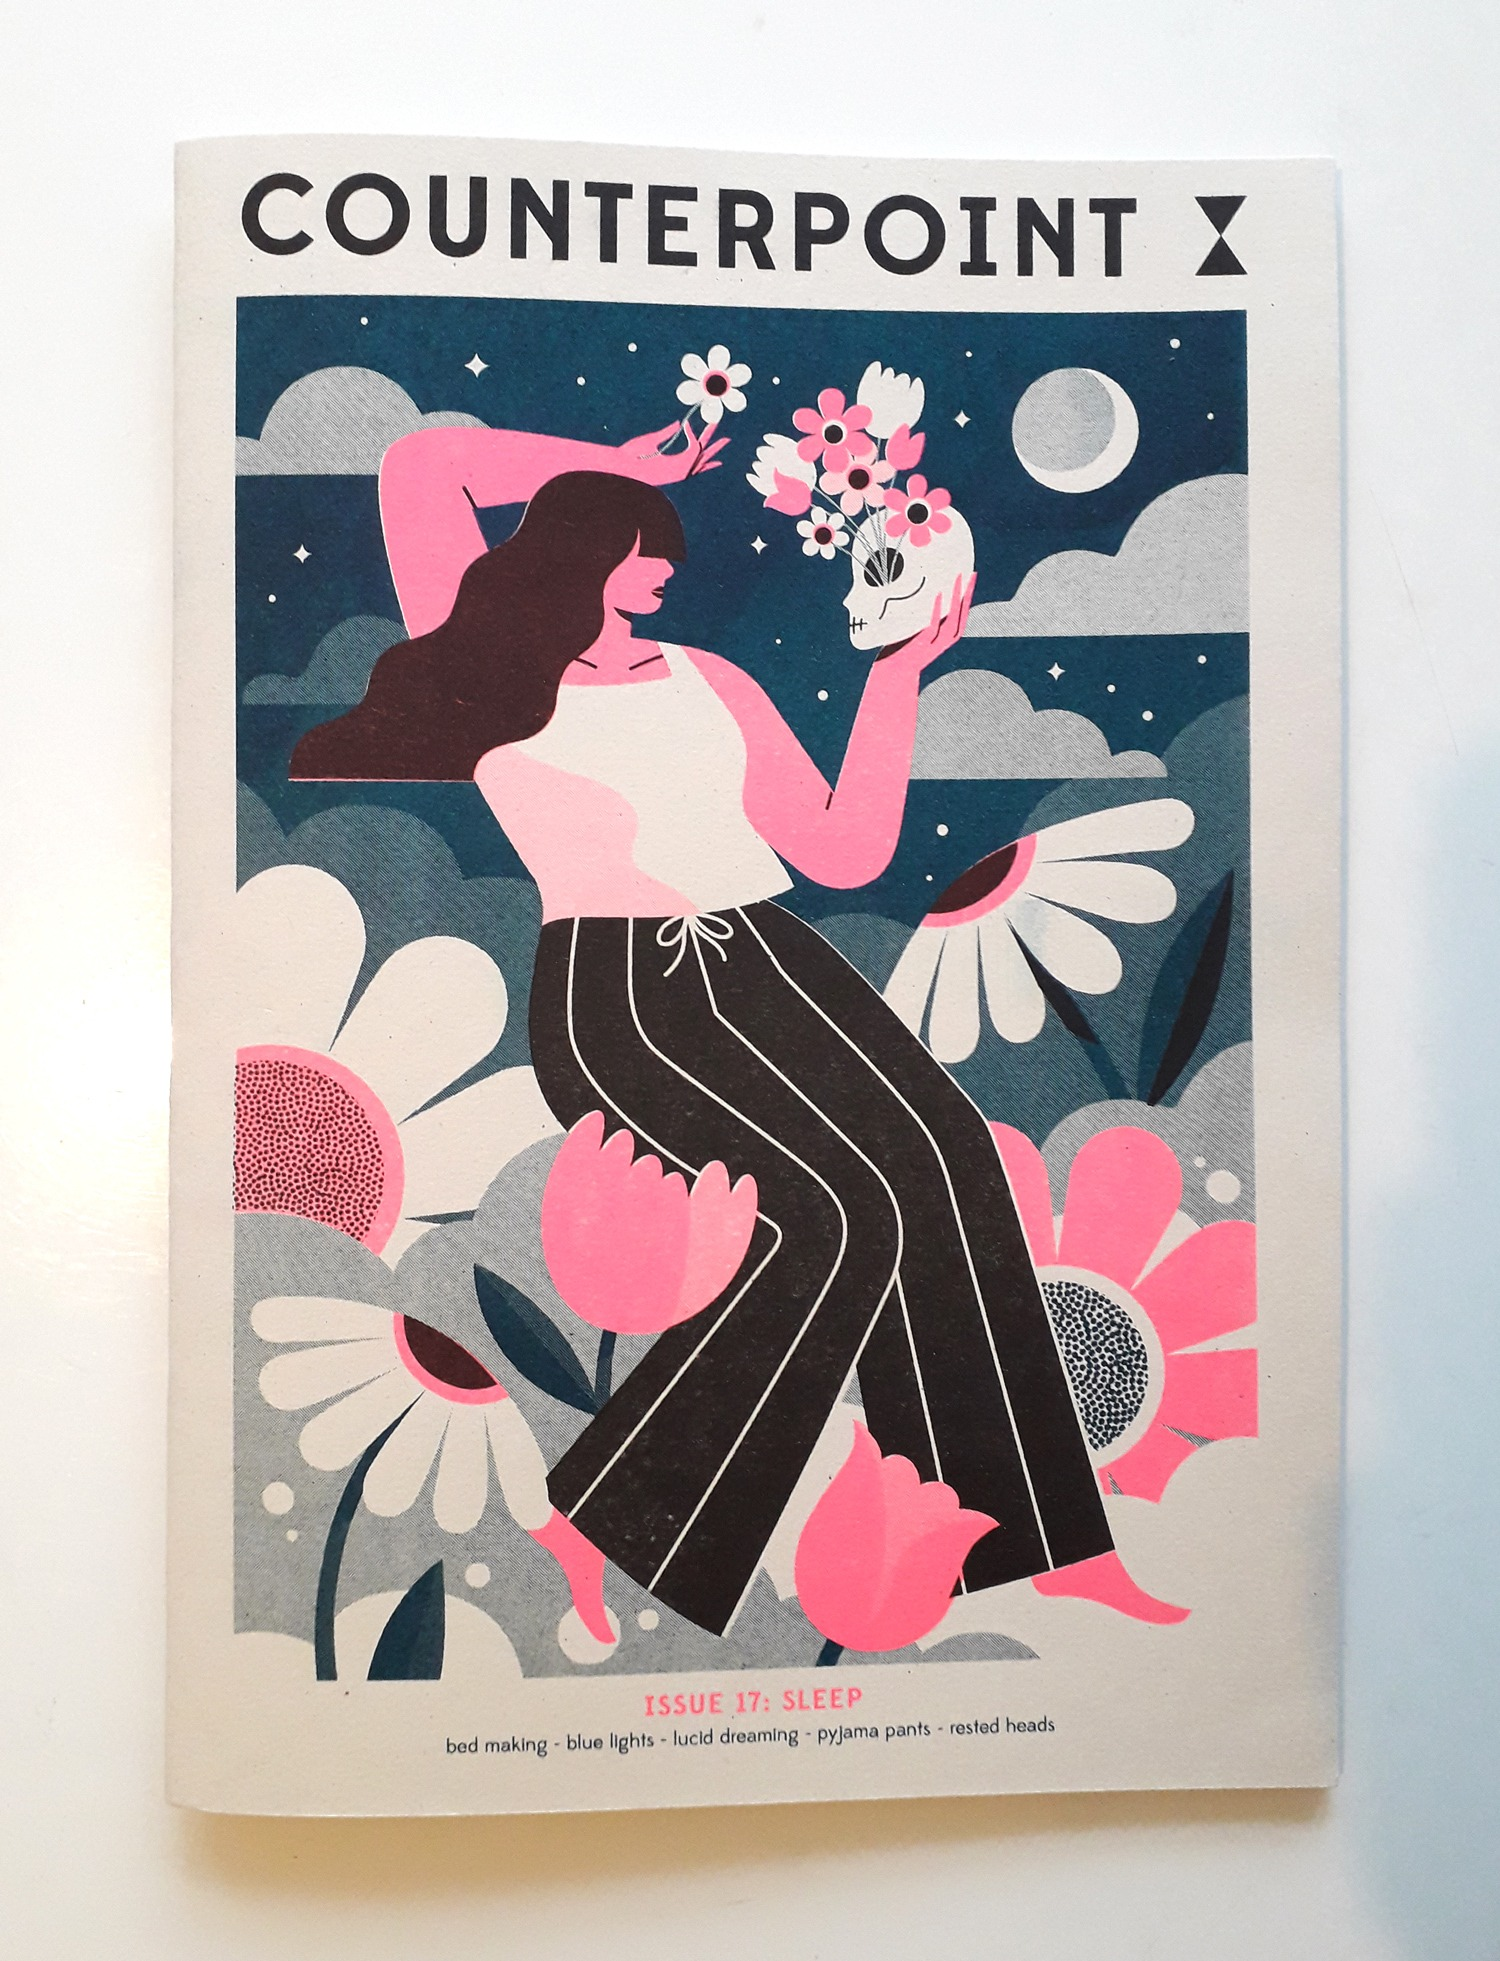 Counterpoint magazine - Sleep issue, cover